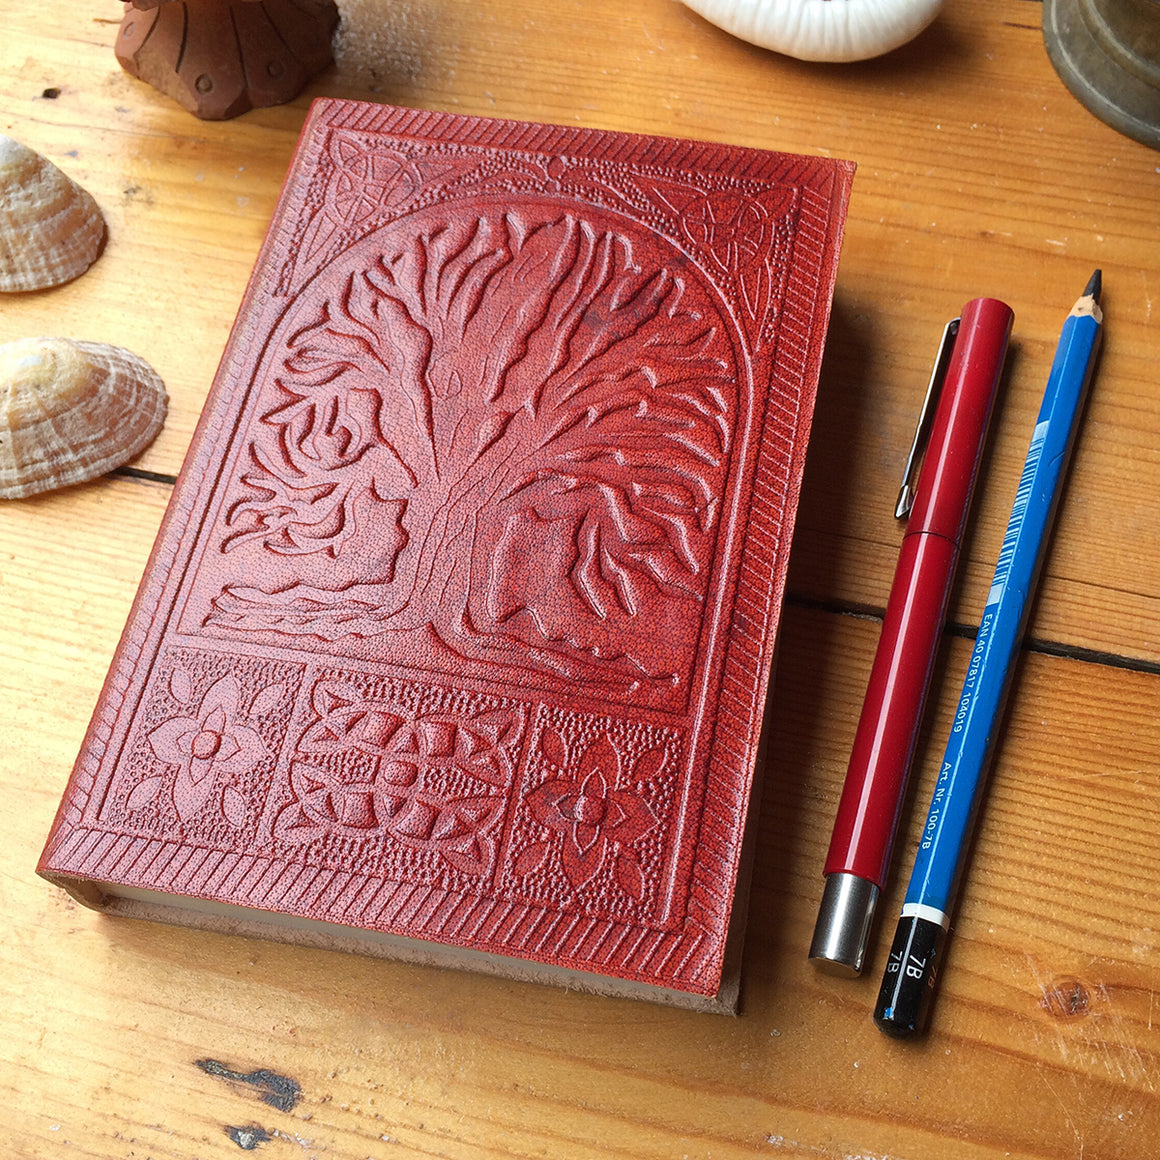 Fairtrade Leather Notebook with embossed Tree of Life design / Handmade Indian Leather Diary / Sketchbook / Journal - Front Cover